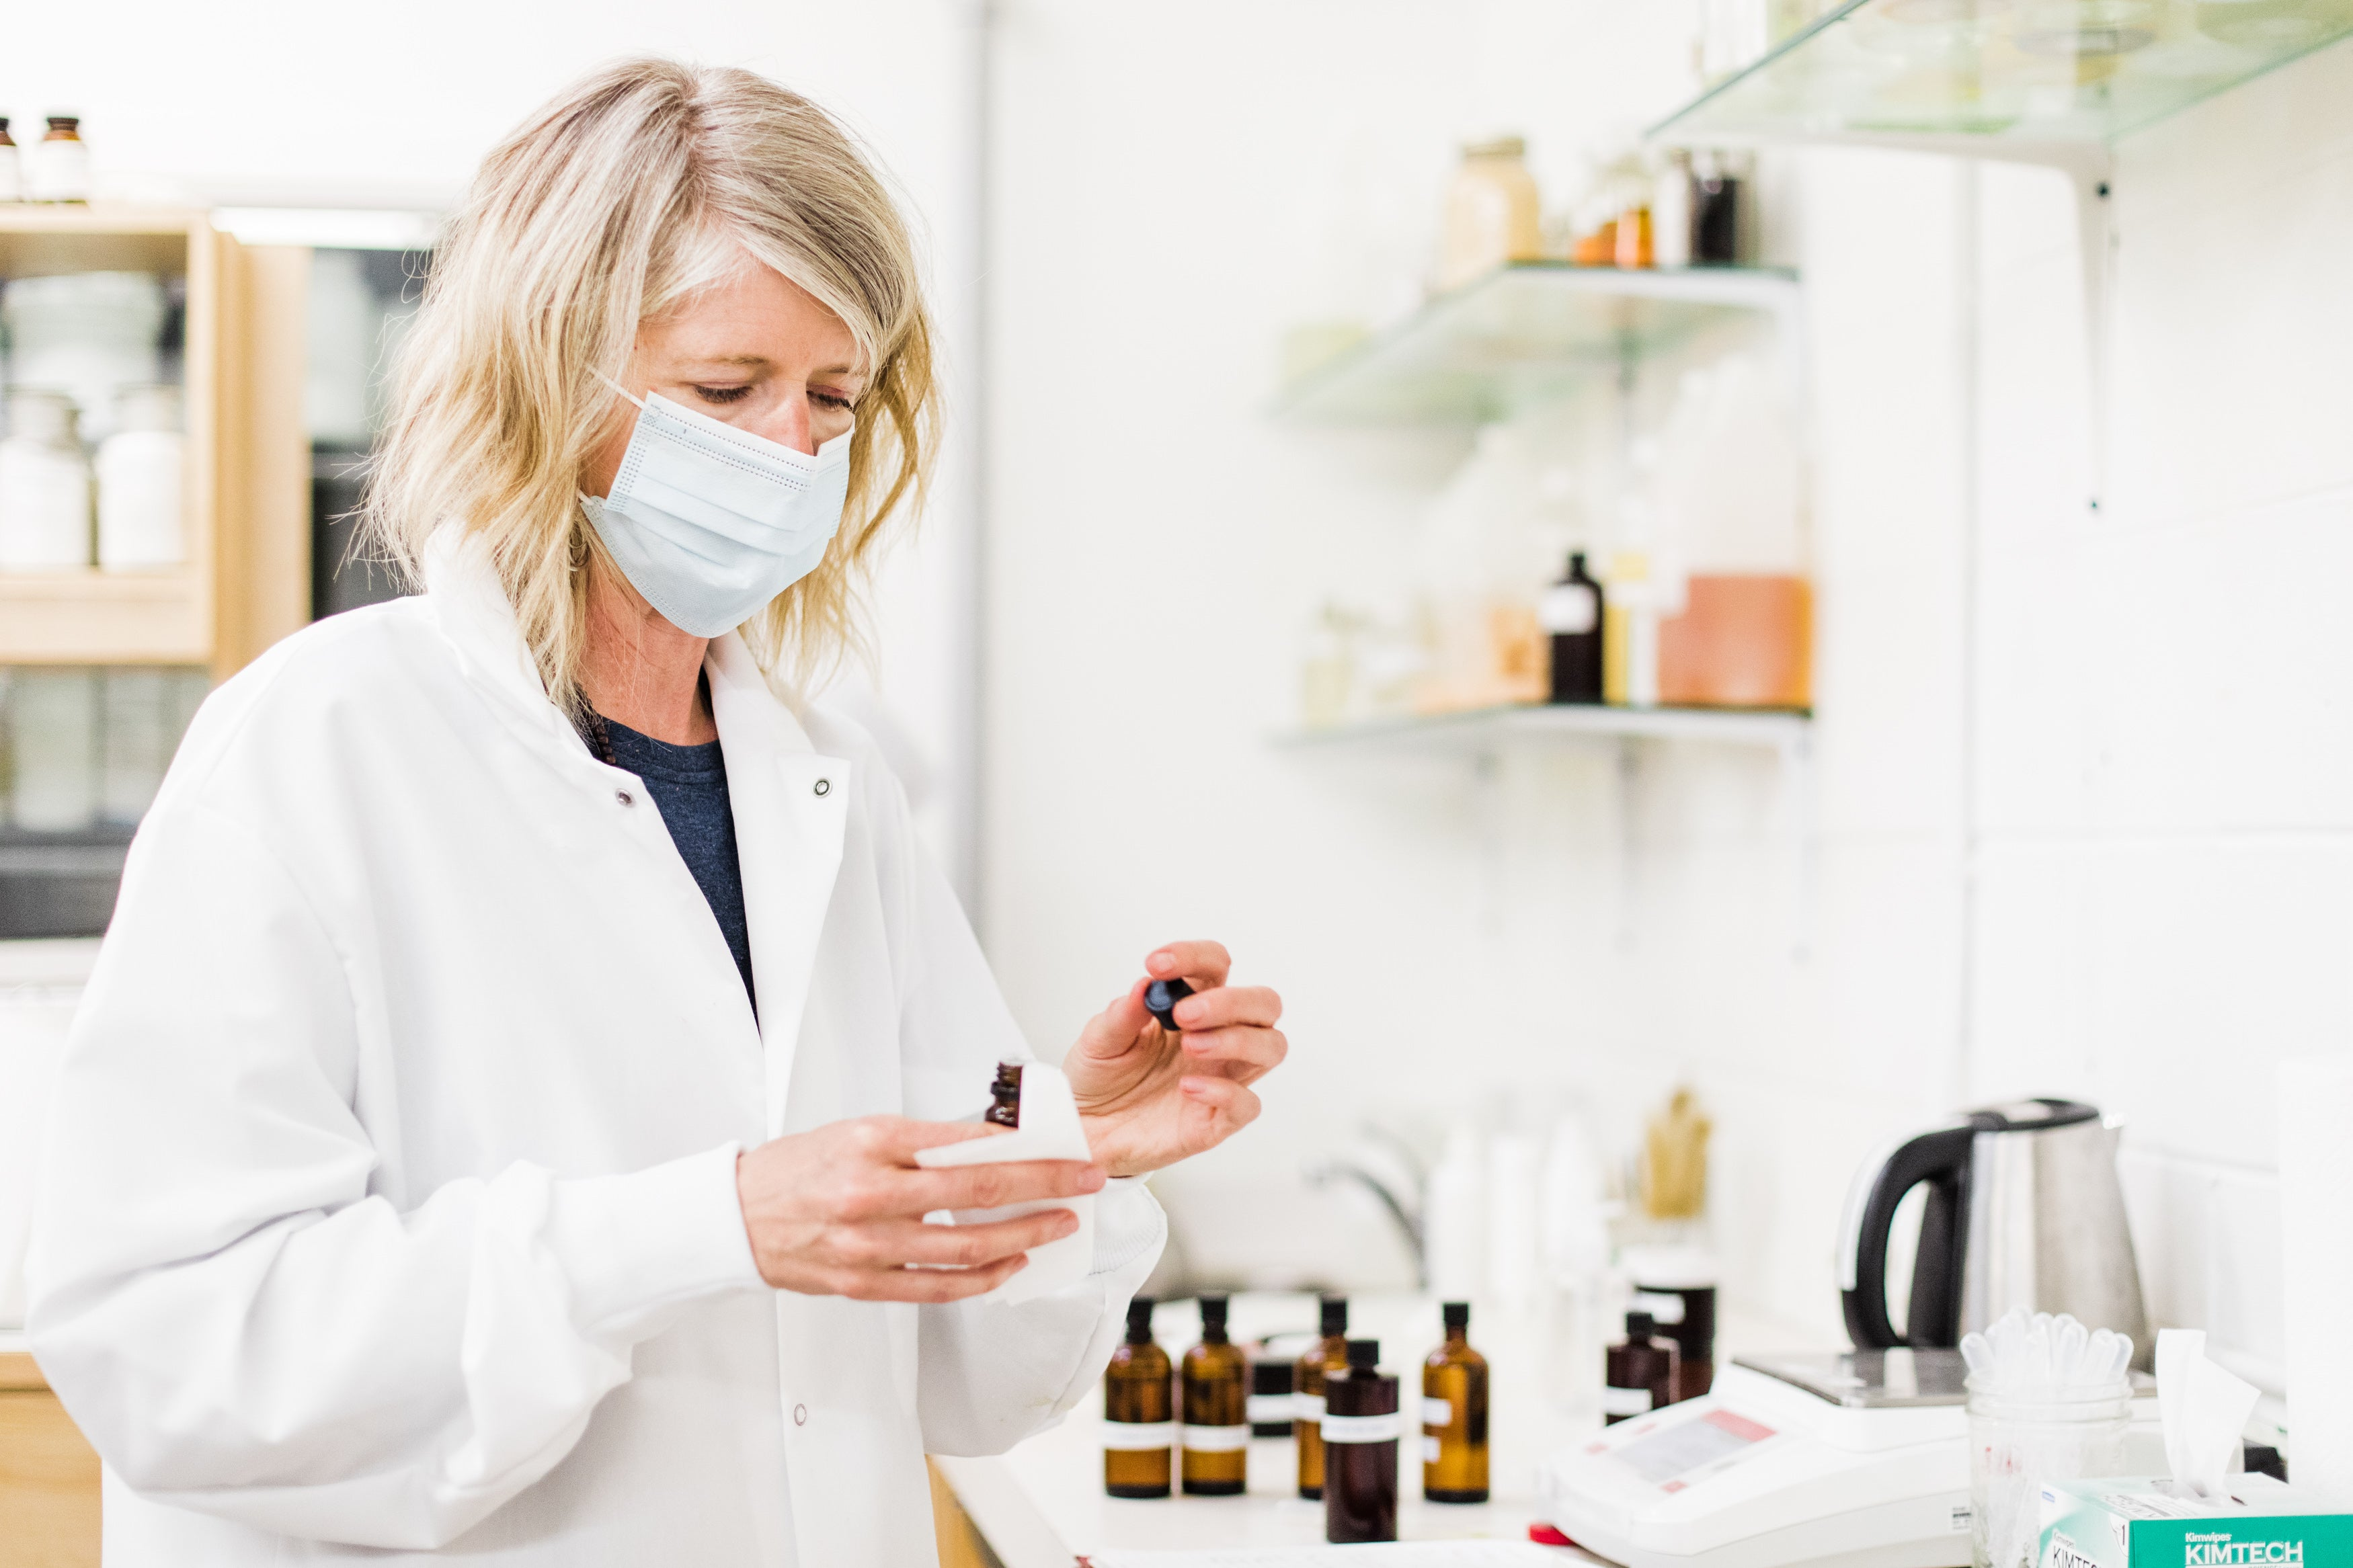 Image of woman in lab mixing essential oils.